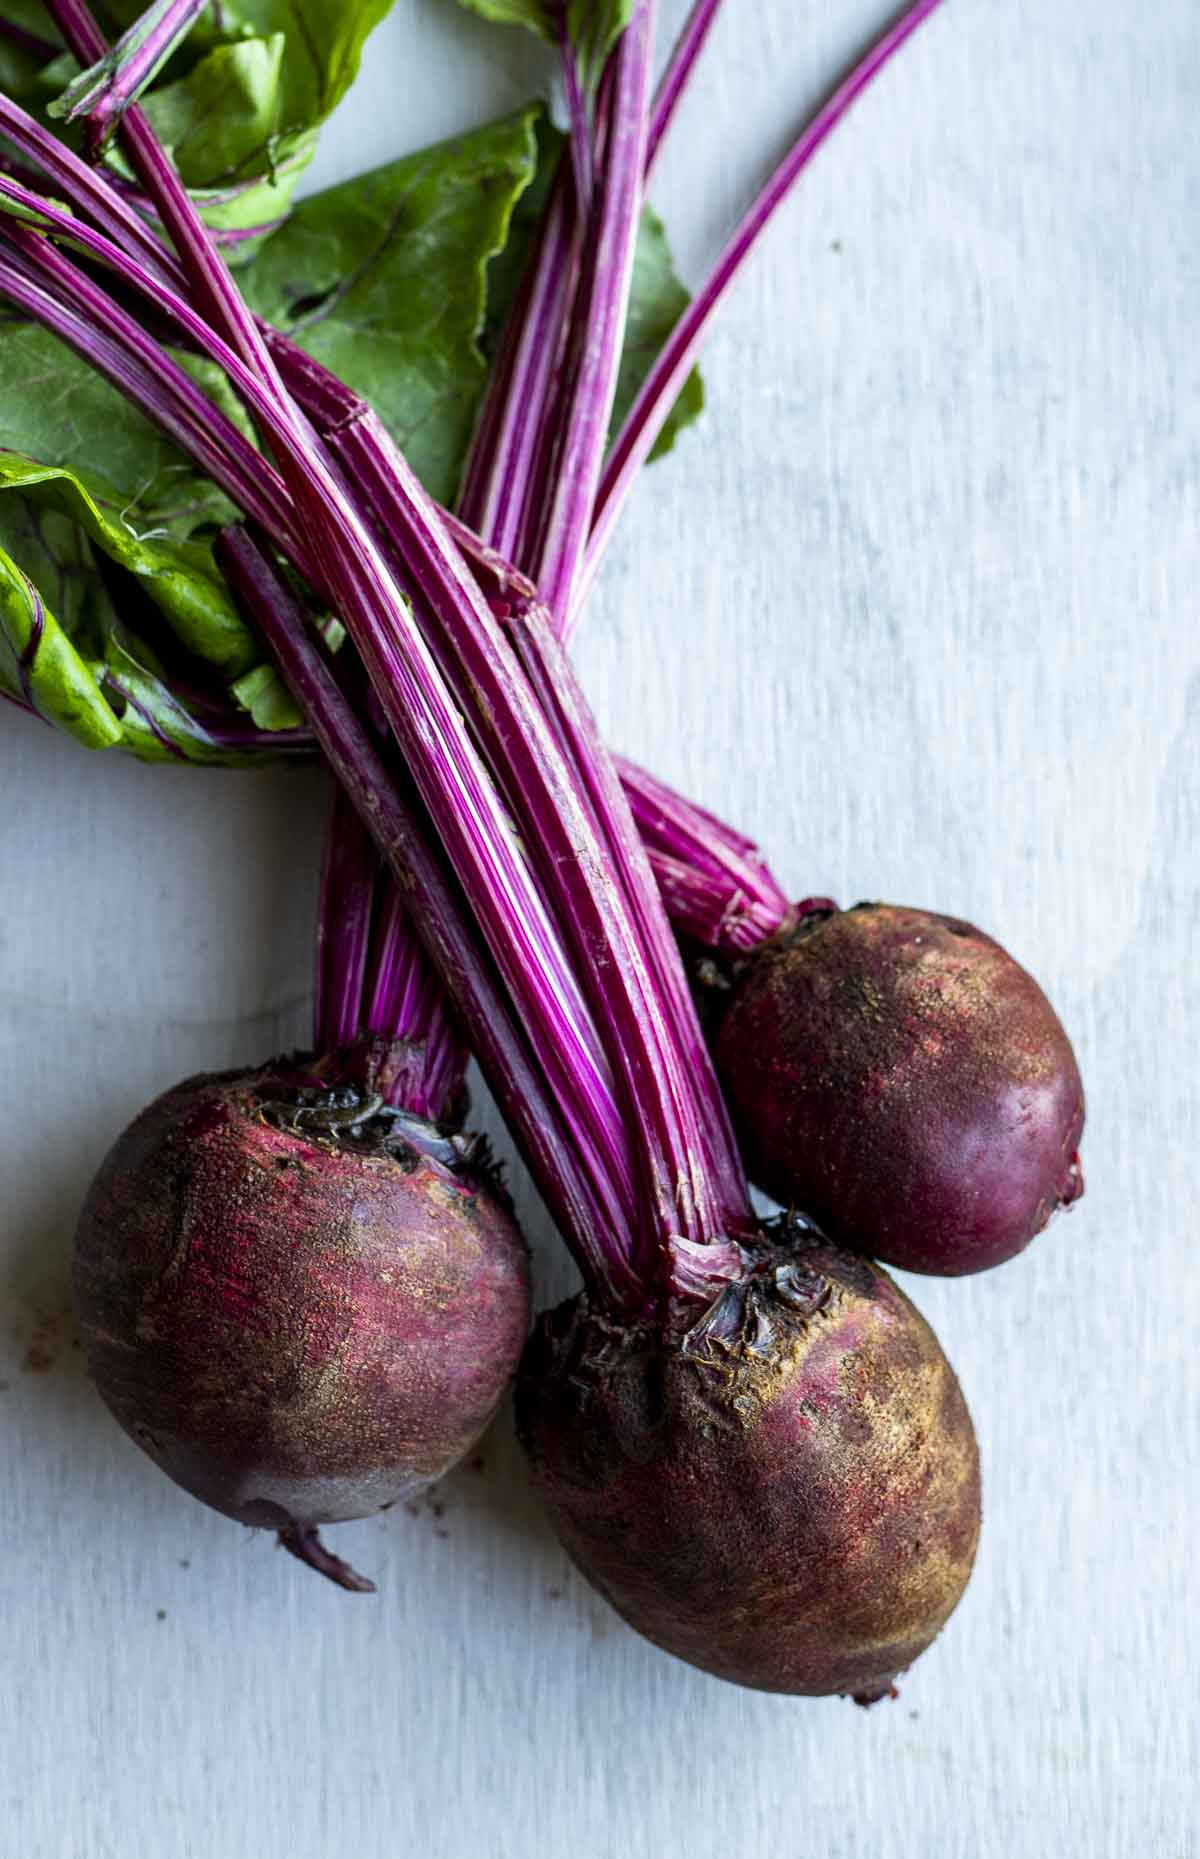 a photo of 3 raw beets with green still attached